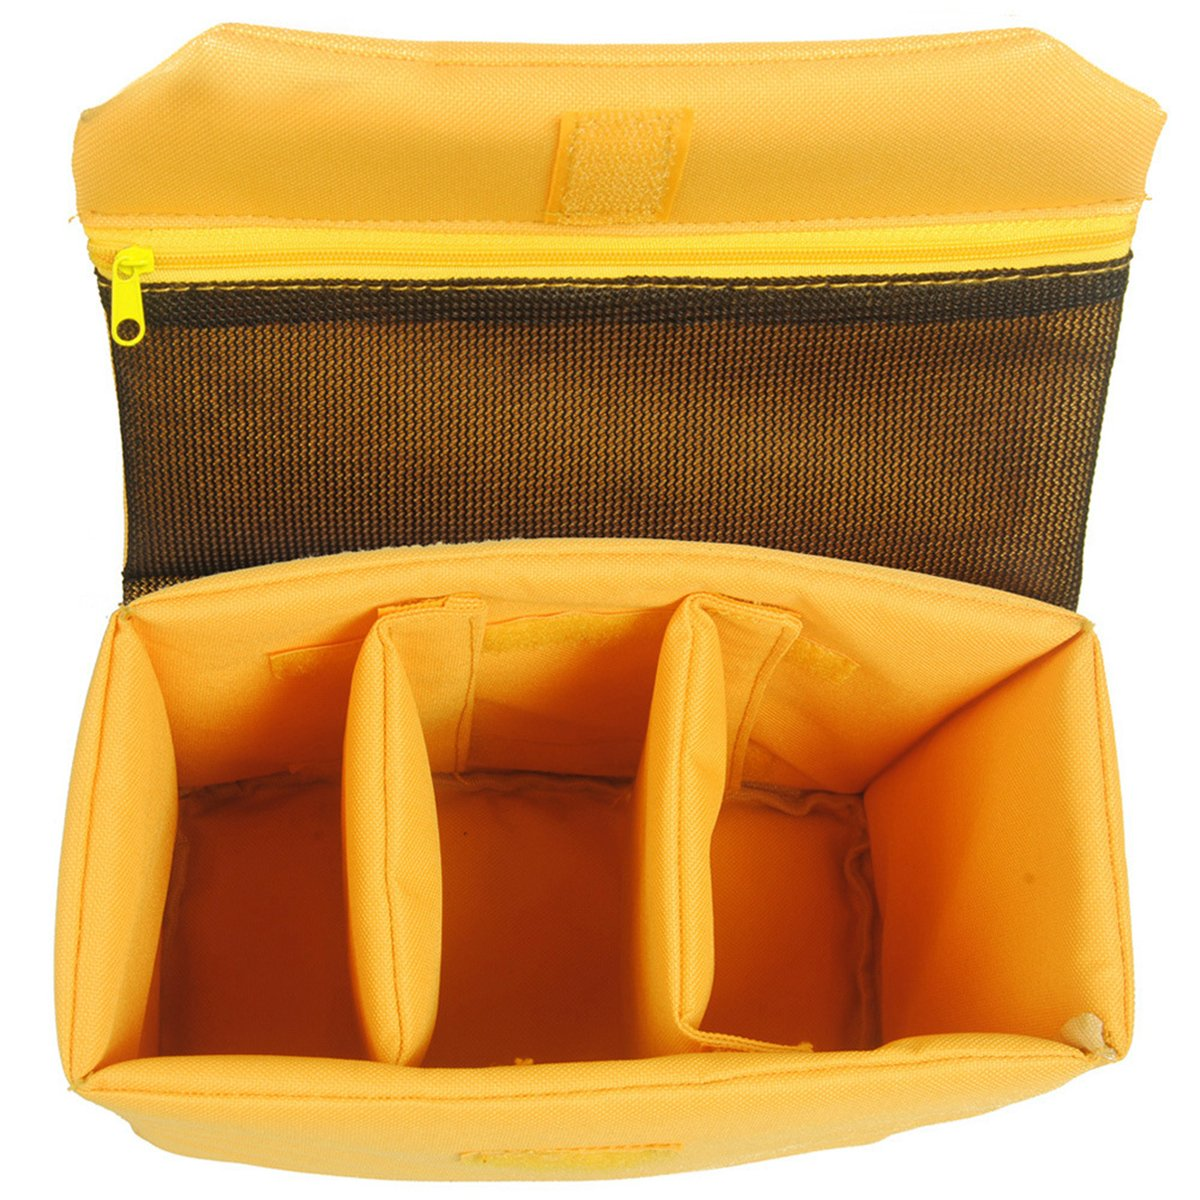 Camera Insert Case Protective Bag Cover,Turpro Waterproof Shockproof Travel Camera Bags SLR DSLR Insert Protection Bag for Sony Canon Nikon Olympus Pentax and etc (12''9''4'' Yellow)